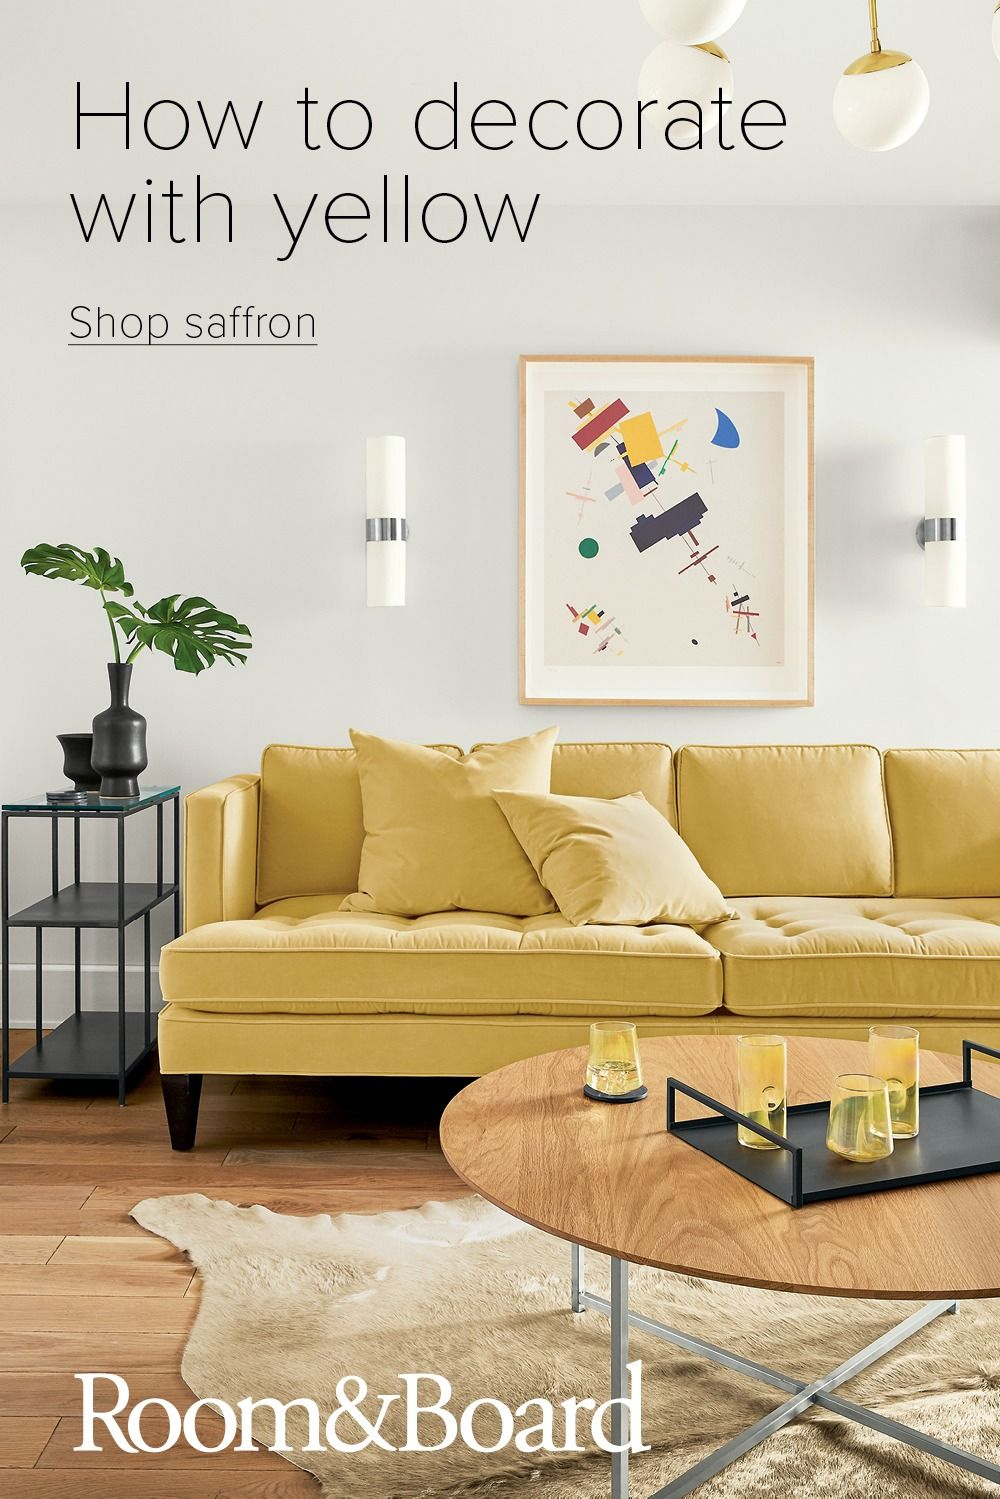 Decorate With Yellow In 2020 Modern Furniture Living Room Decor Ottoman In Living Room #yellow #living #room #furniture